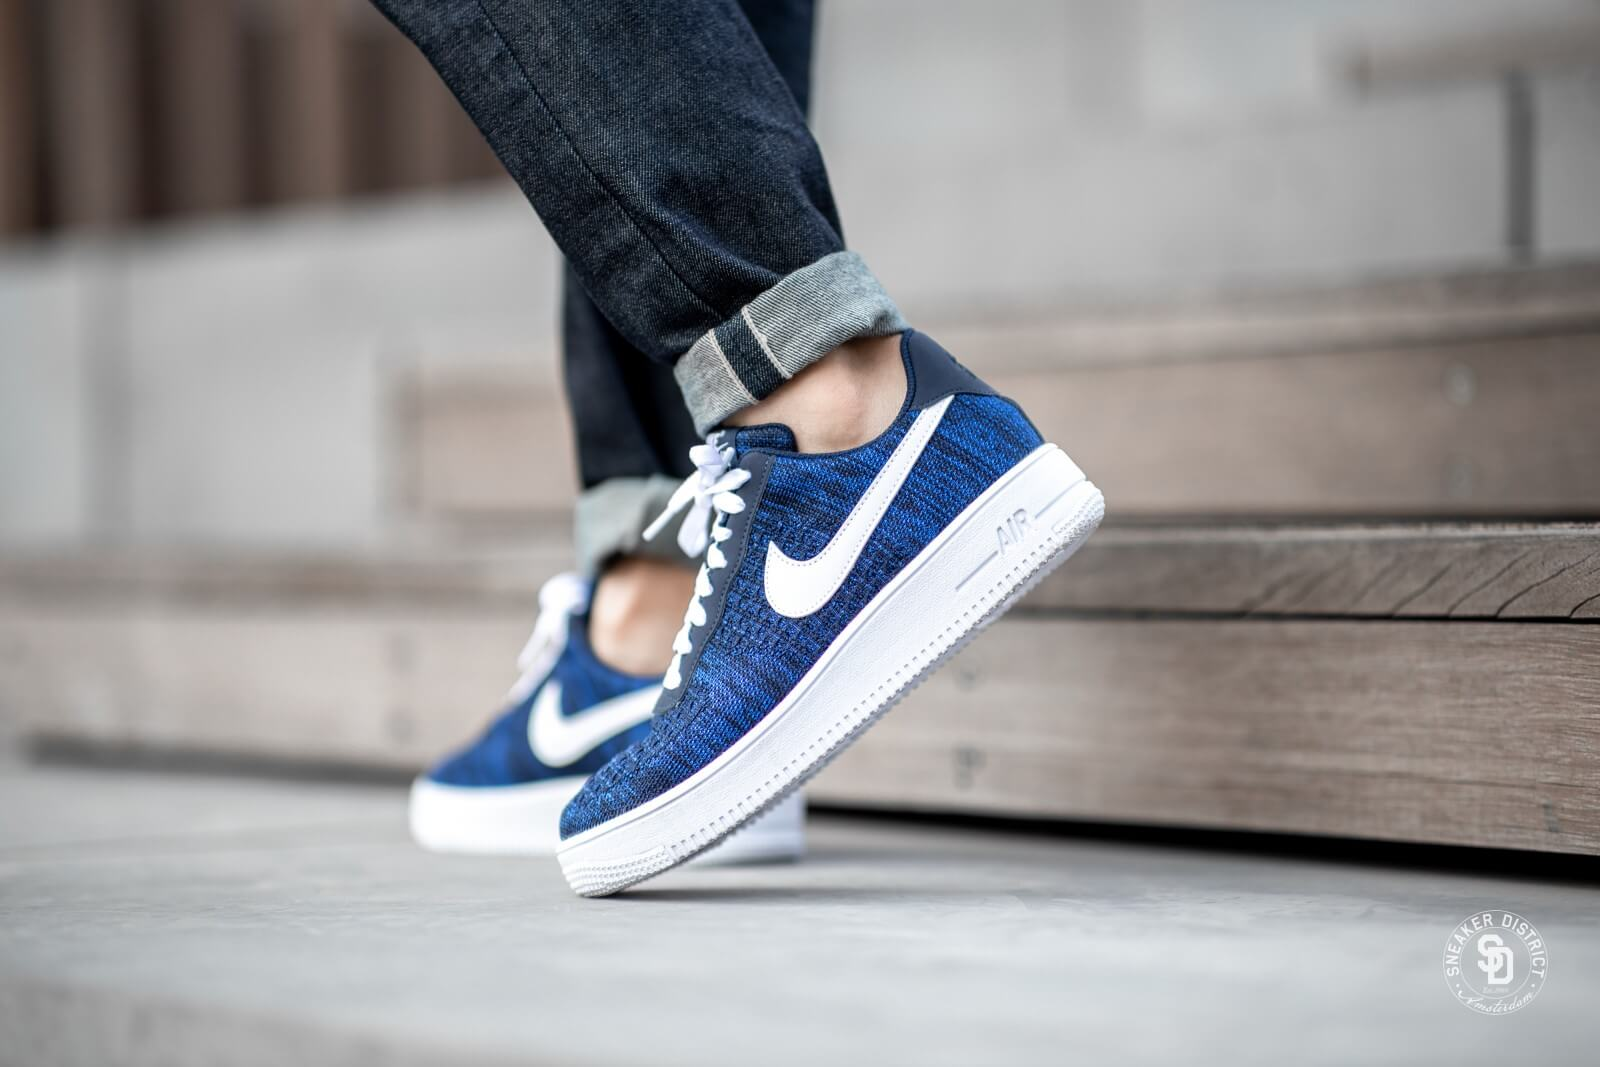 Nike Air Force 1 Flyknit 2.0 College NavyWhite Obsidian AV3042 400